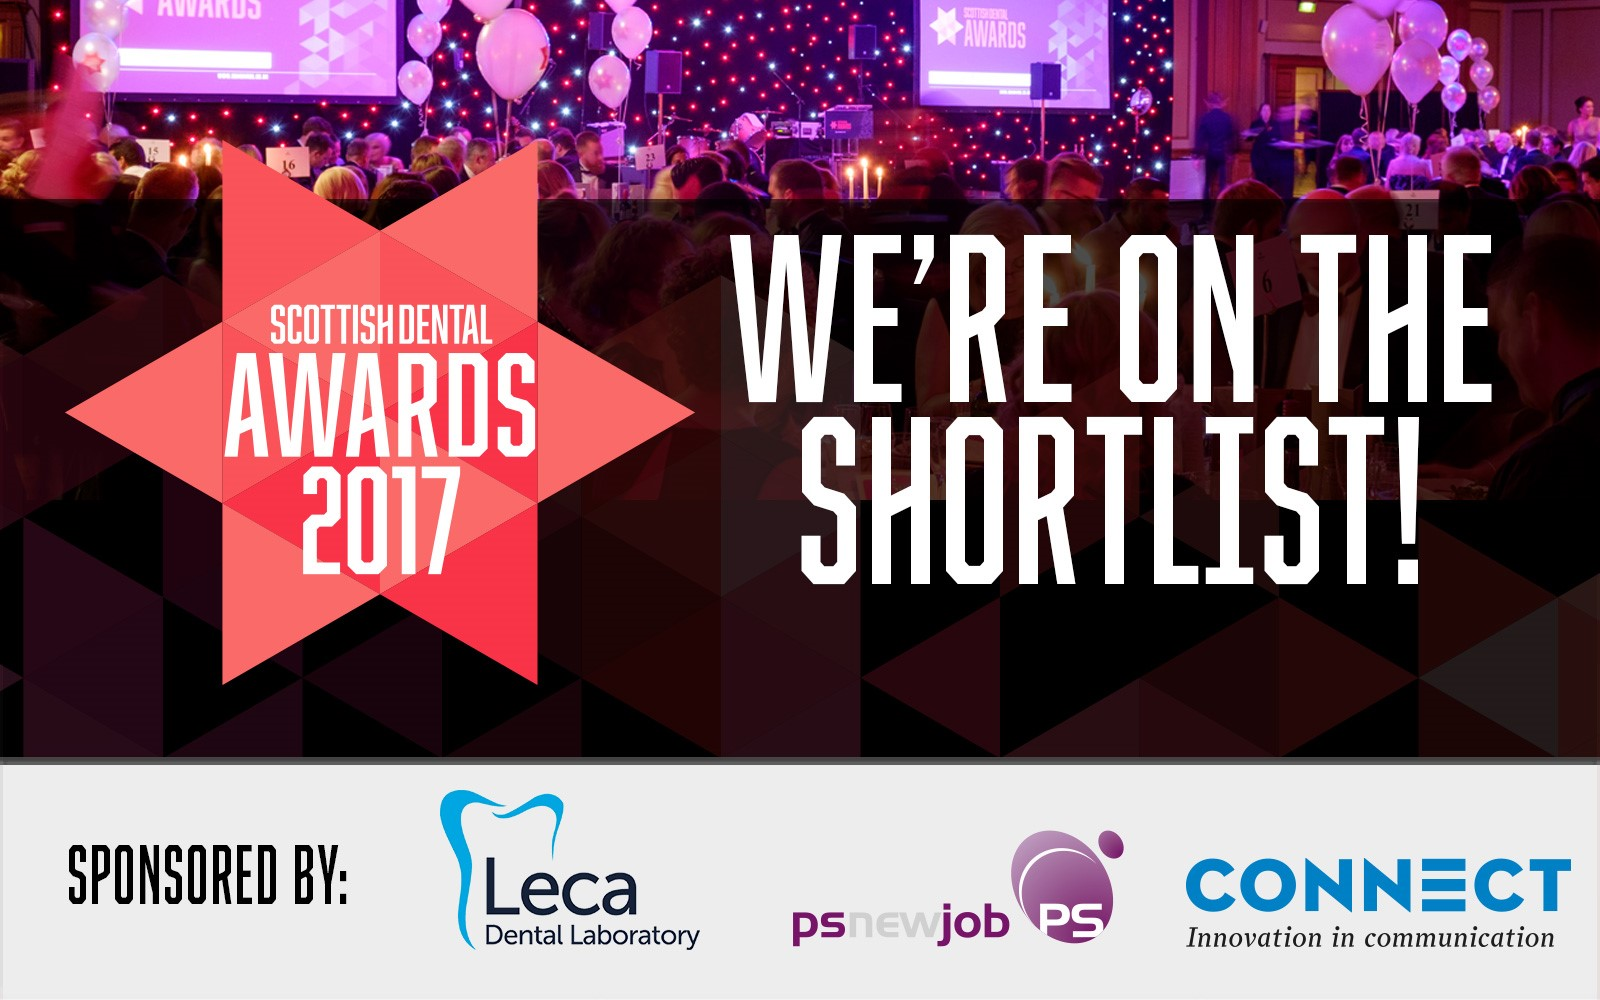 Scottish Dental Awards 2017